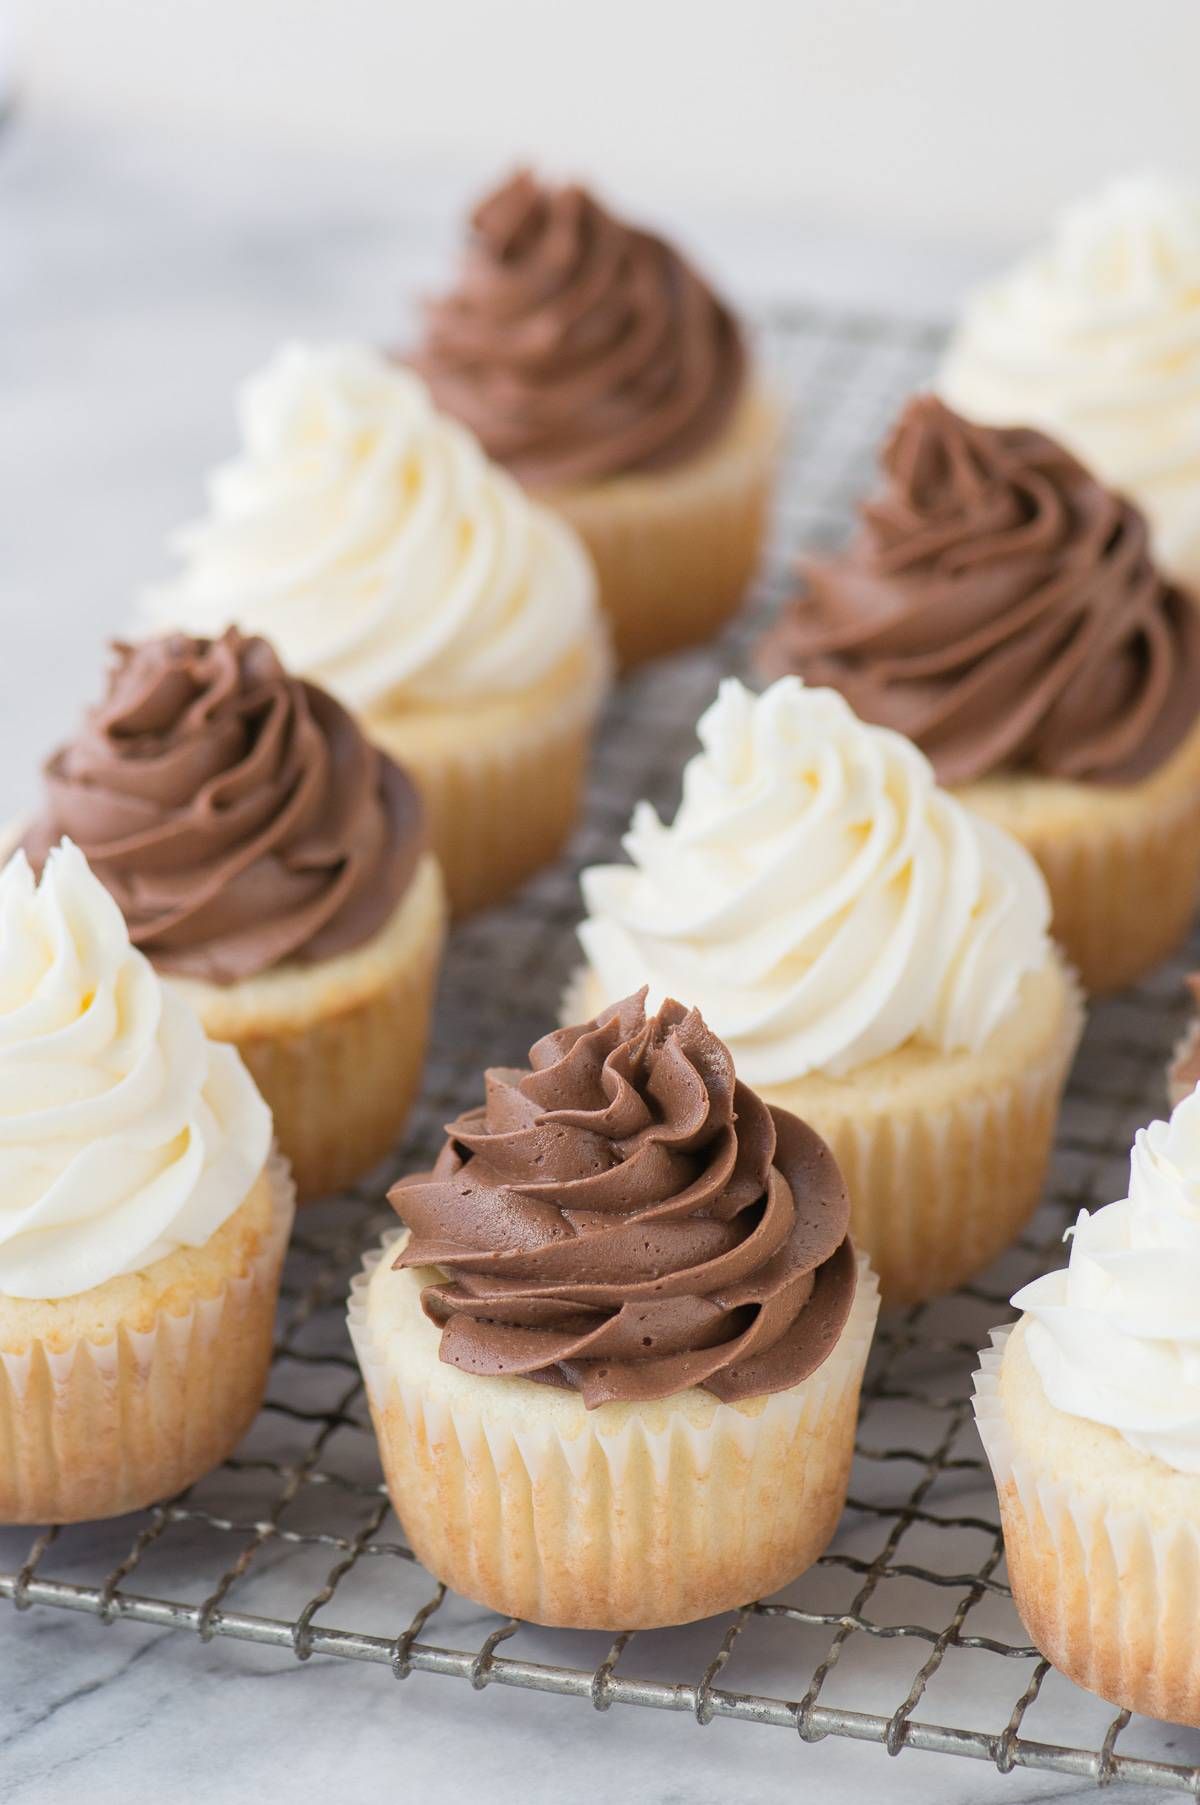 This CLASSIC WHITE CUPCAKE recipe is AMAZING! This is our go-to white cupcake recipe because it's so moist and flavorful. Pair these cupcakes with vanilla or chocolate buttercream.